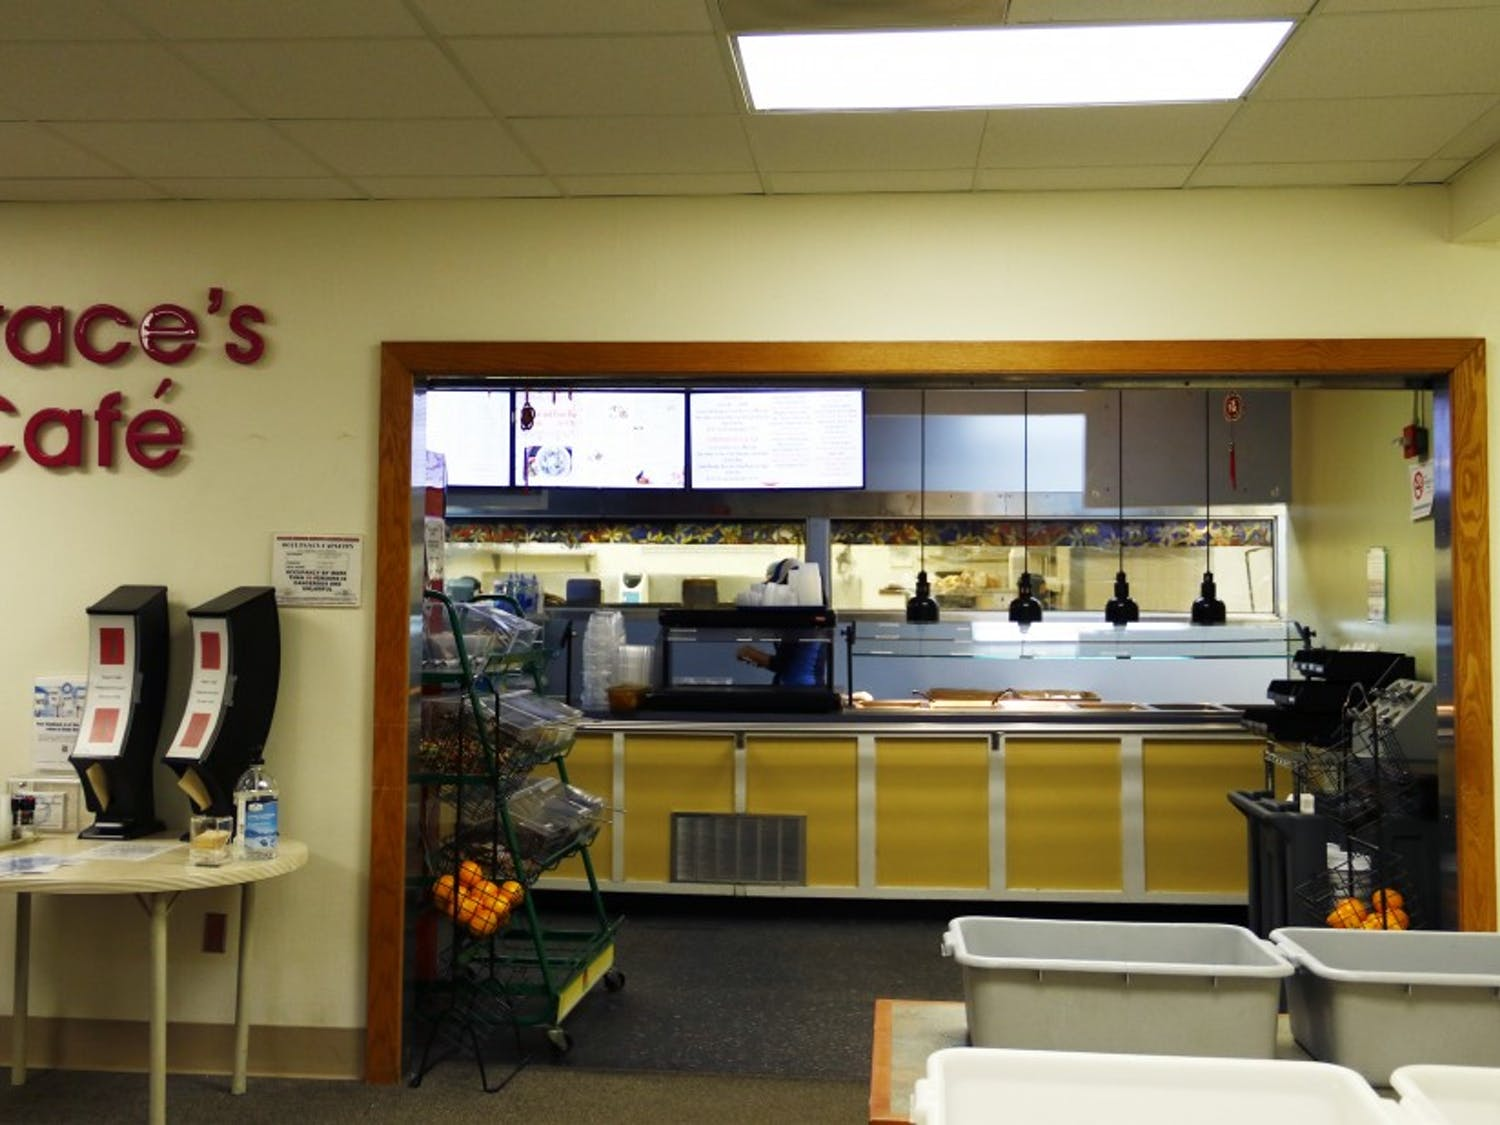 After being passed over as a potential West Union eatery, Grace's Café will close at the end of the semester due to maintenance costs.